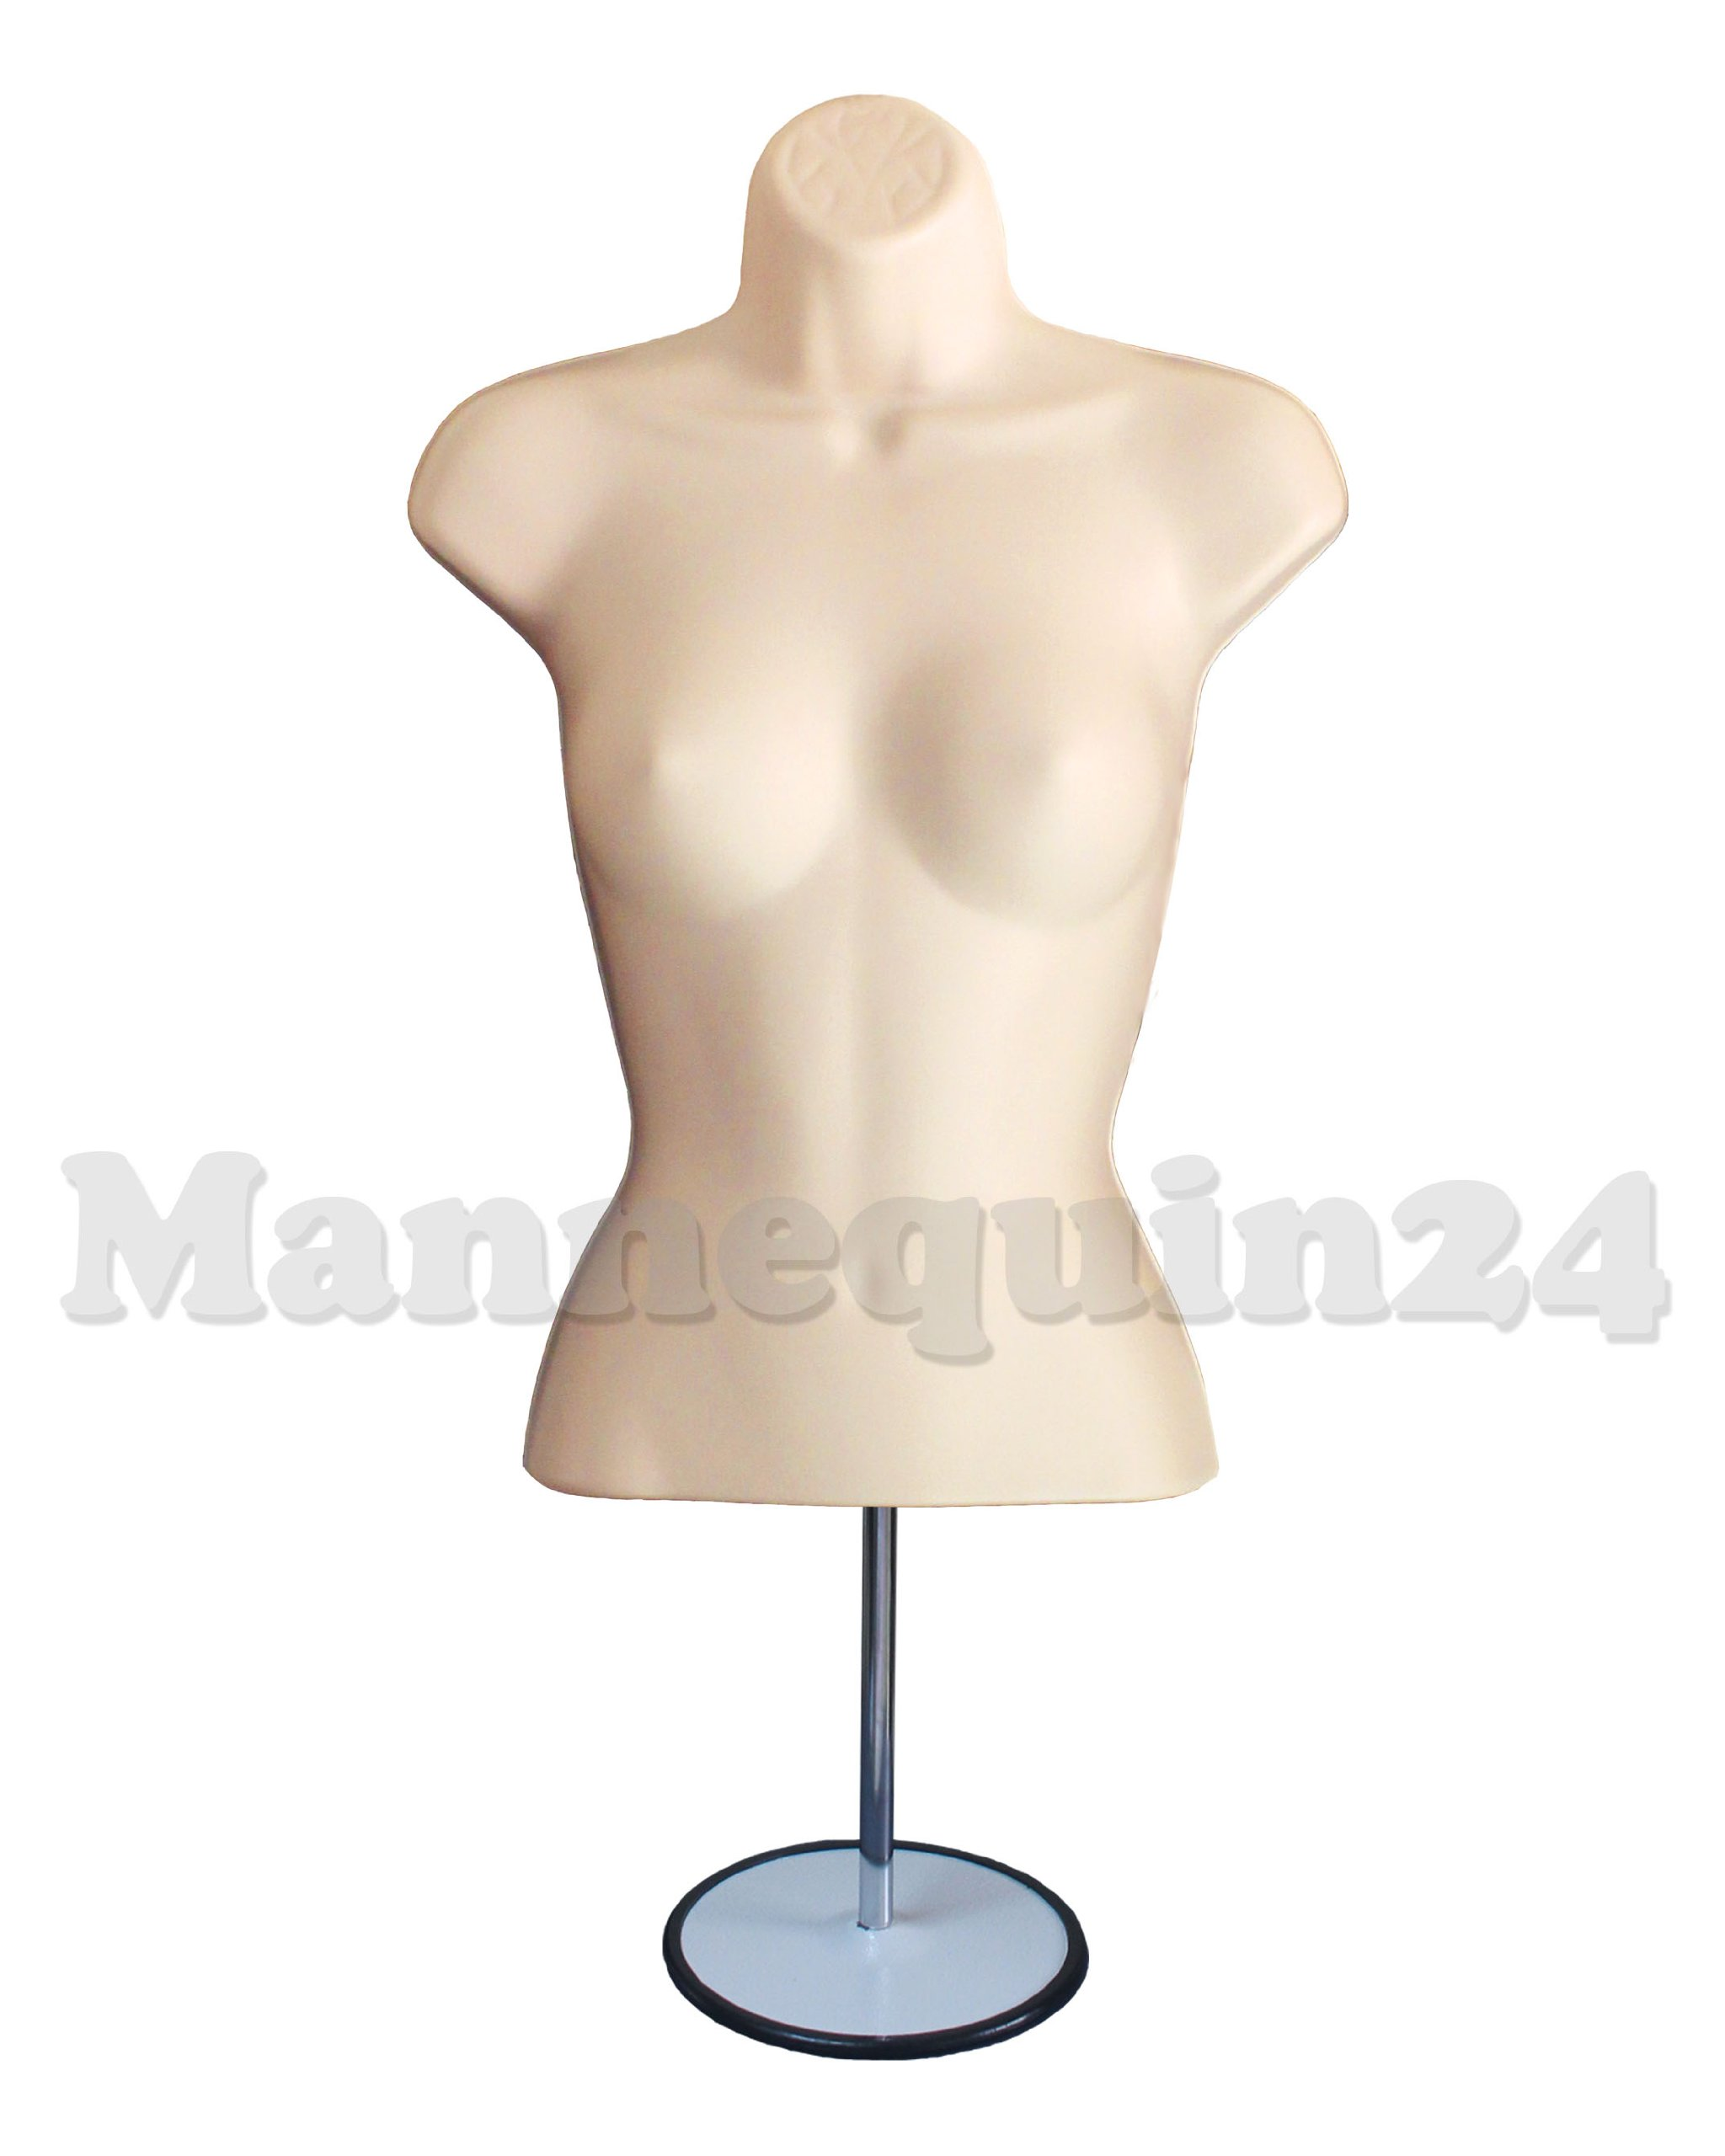 Mannequin Form Flesh Female Torso (Waist Long) with Metal Stand and Hook for Hanging Pants